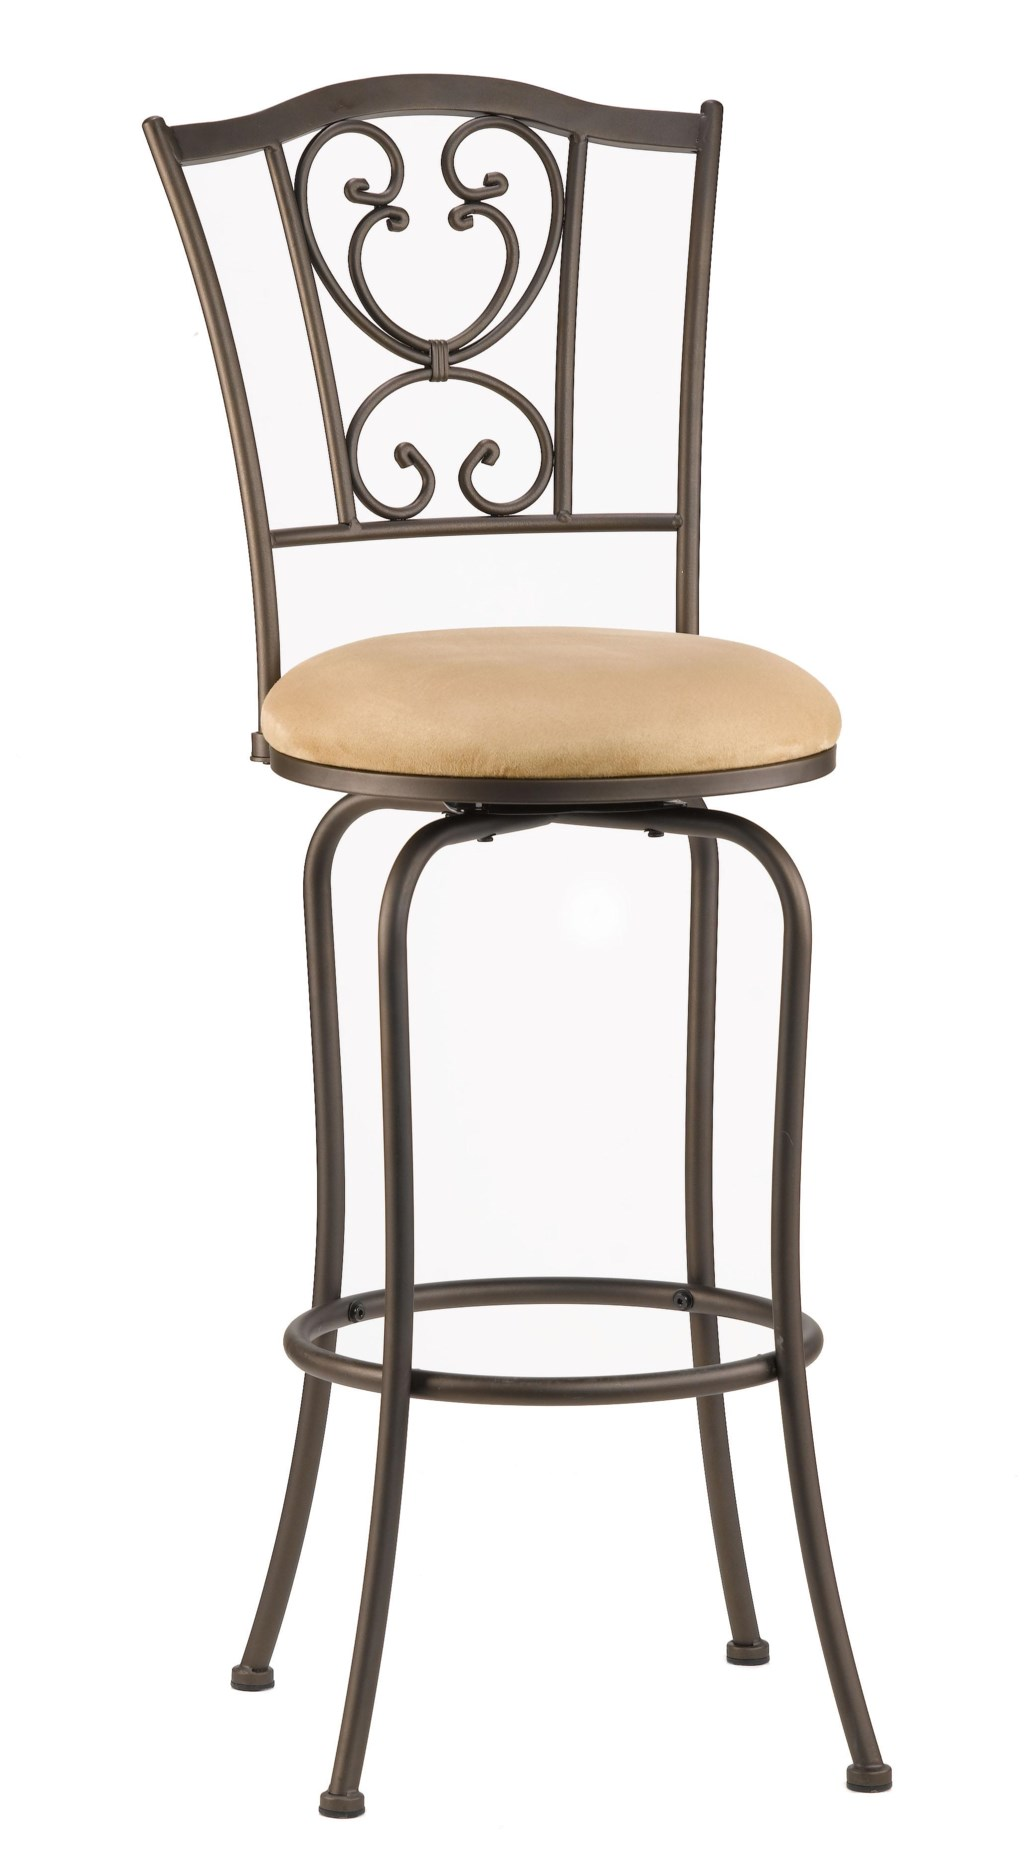 Hillsdale Metal Stools 4120 821 24 Bar Height Concord Swivel Stool